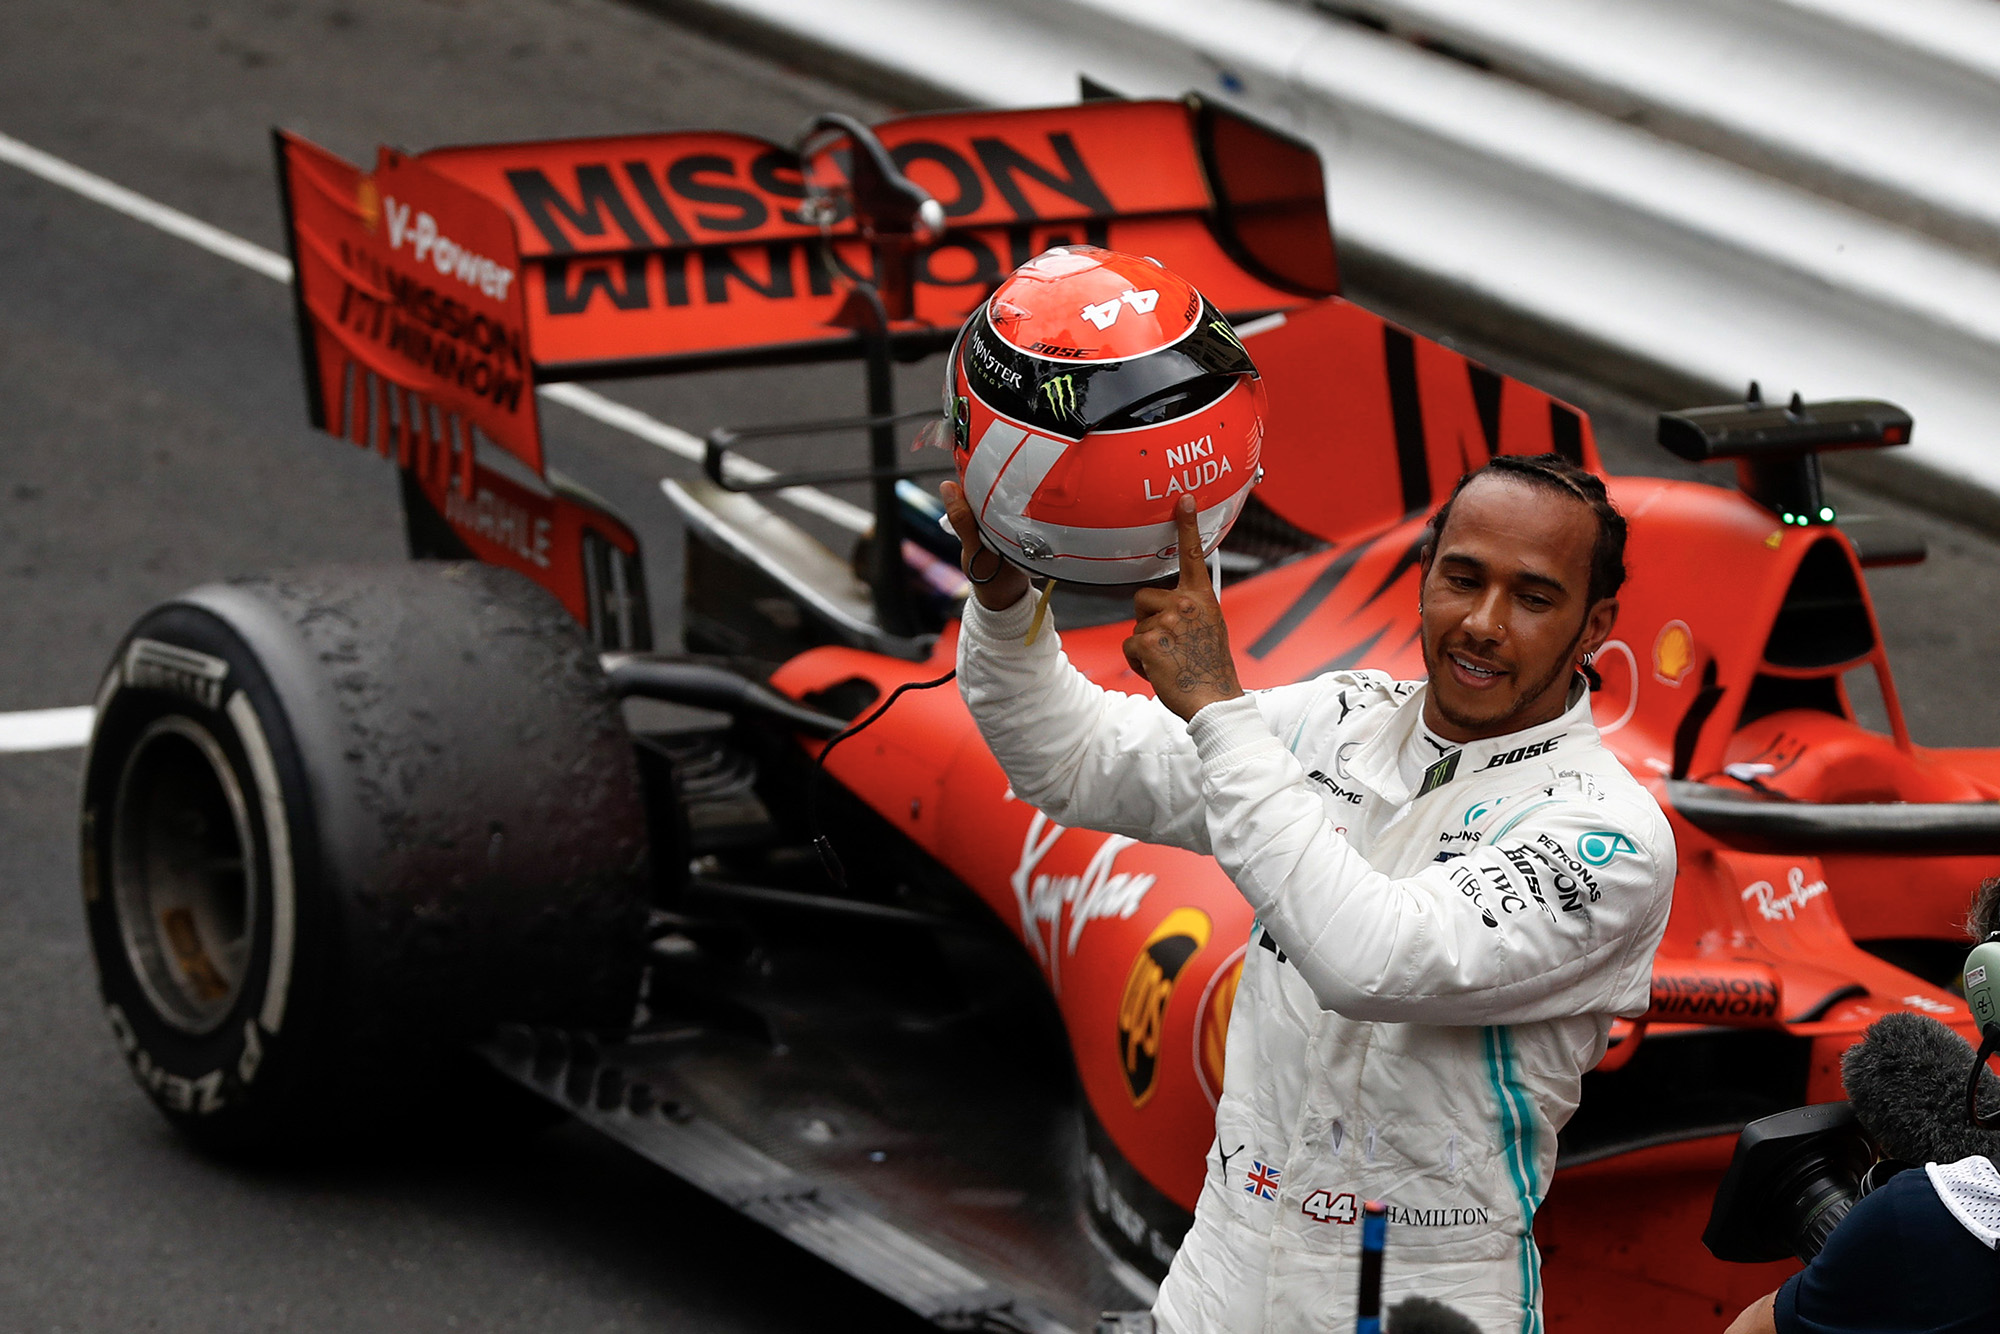 Lewis Hamilton points at his red Niki Lauda helmet in tribute to the three-time world champion